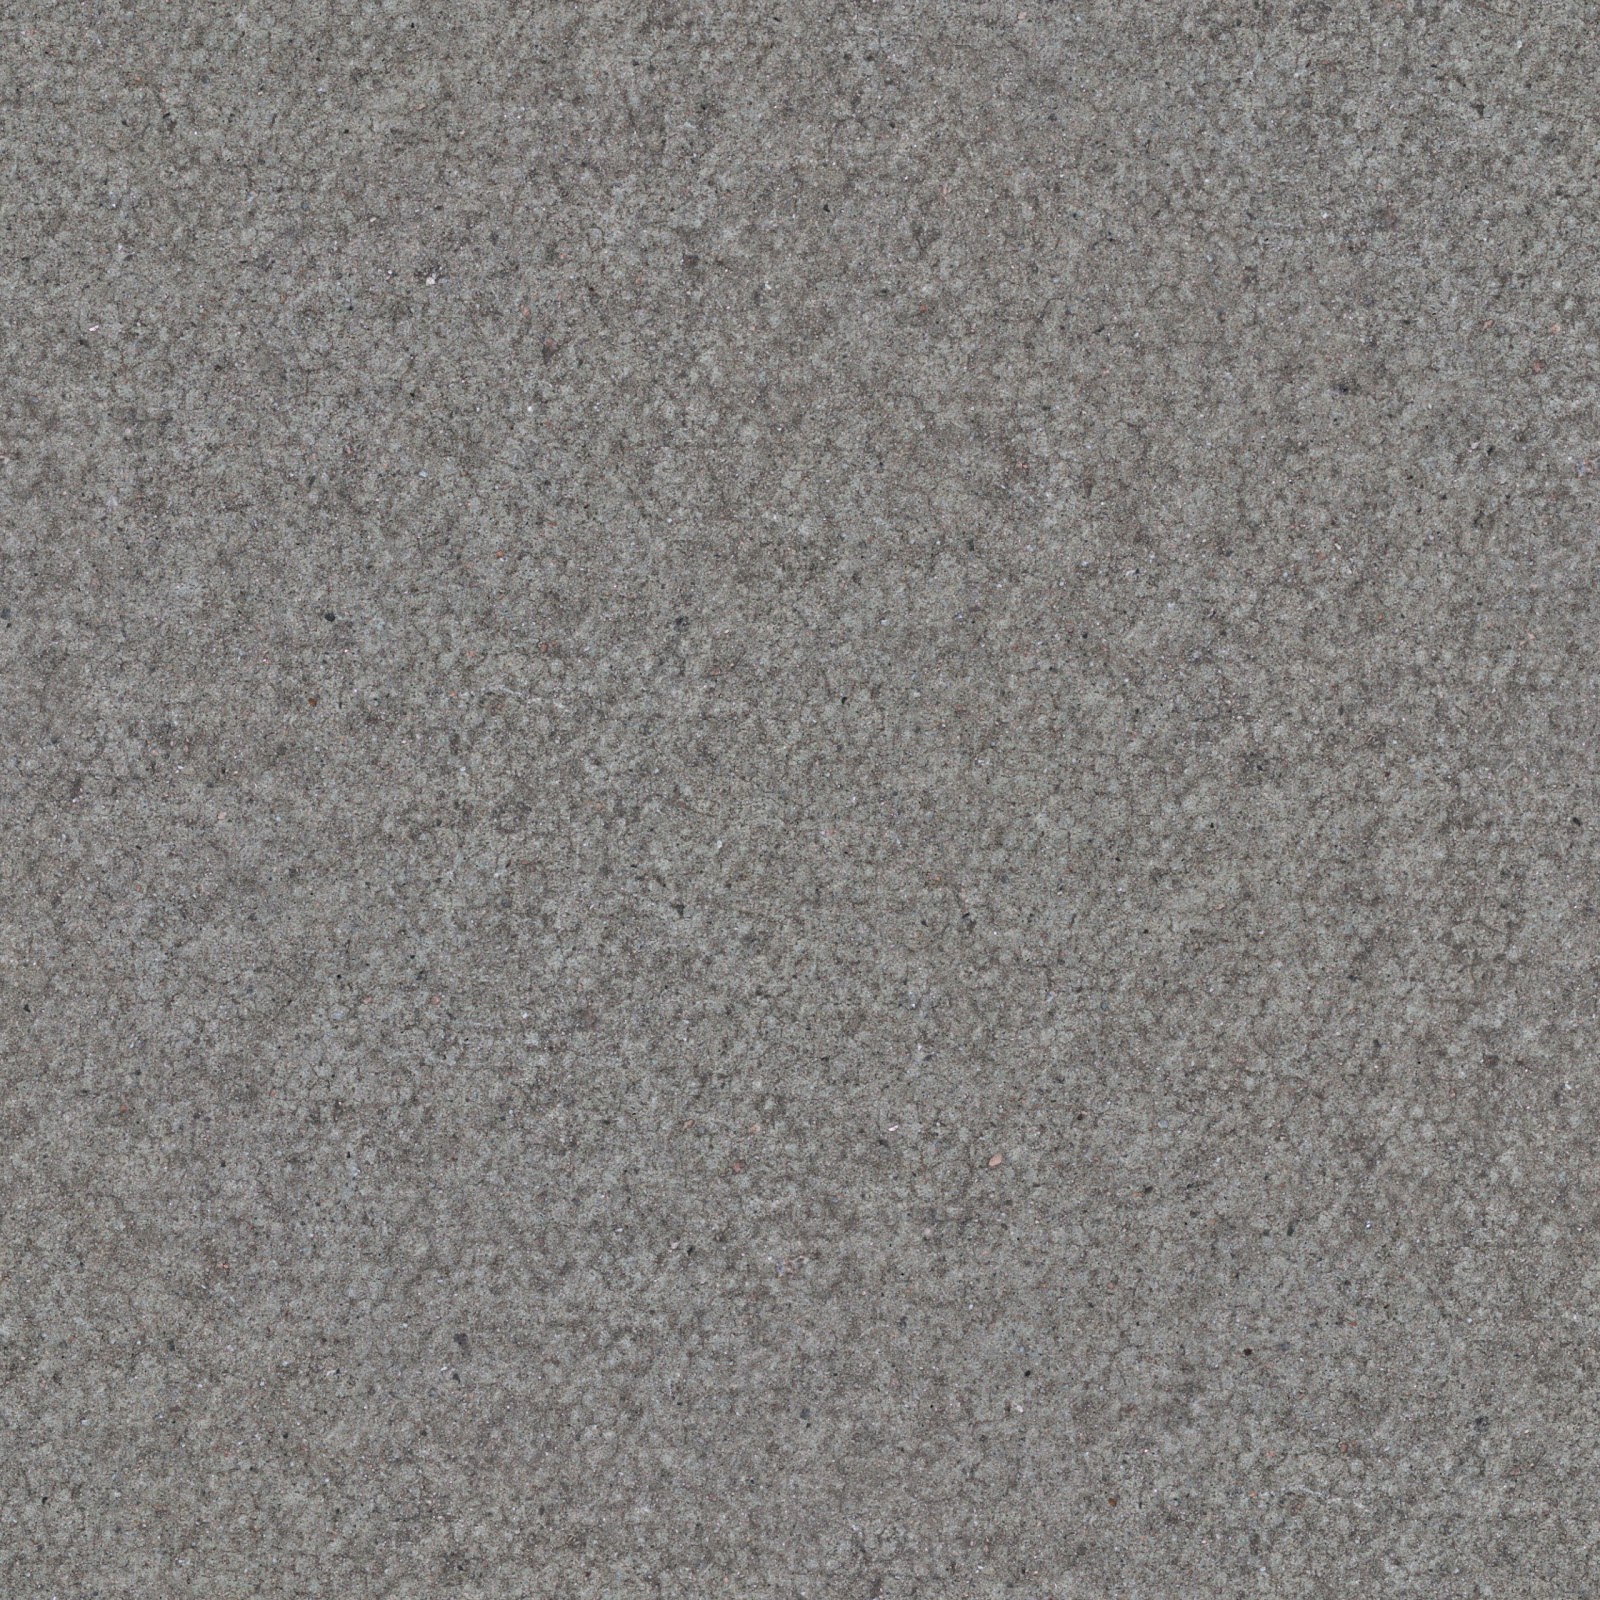 Seamless concrete floor tile texture